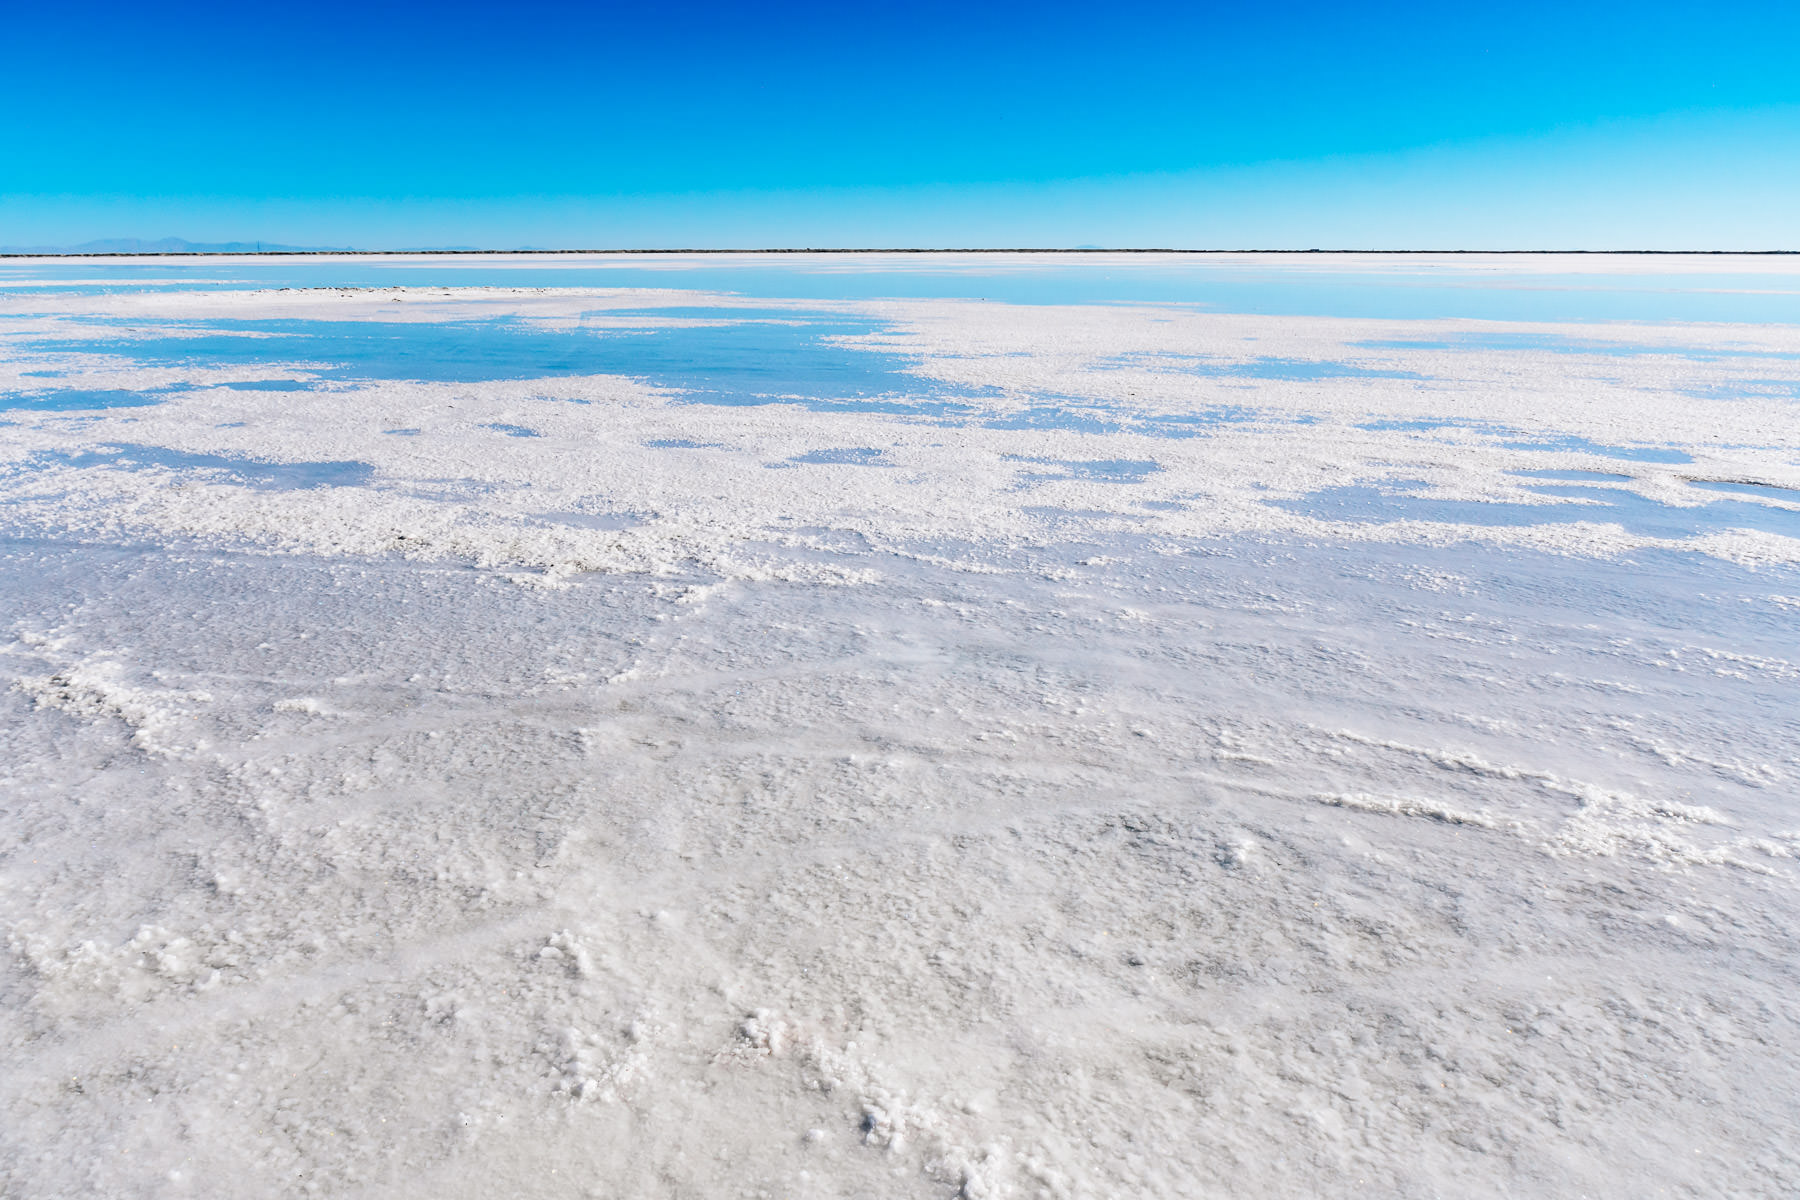 Utah's Bonneville Salt Flats seem to stretch into the distance for forever.